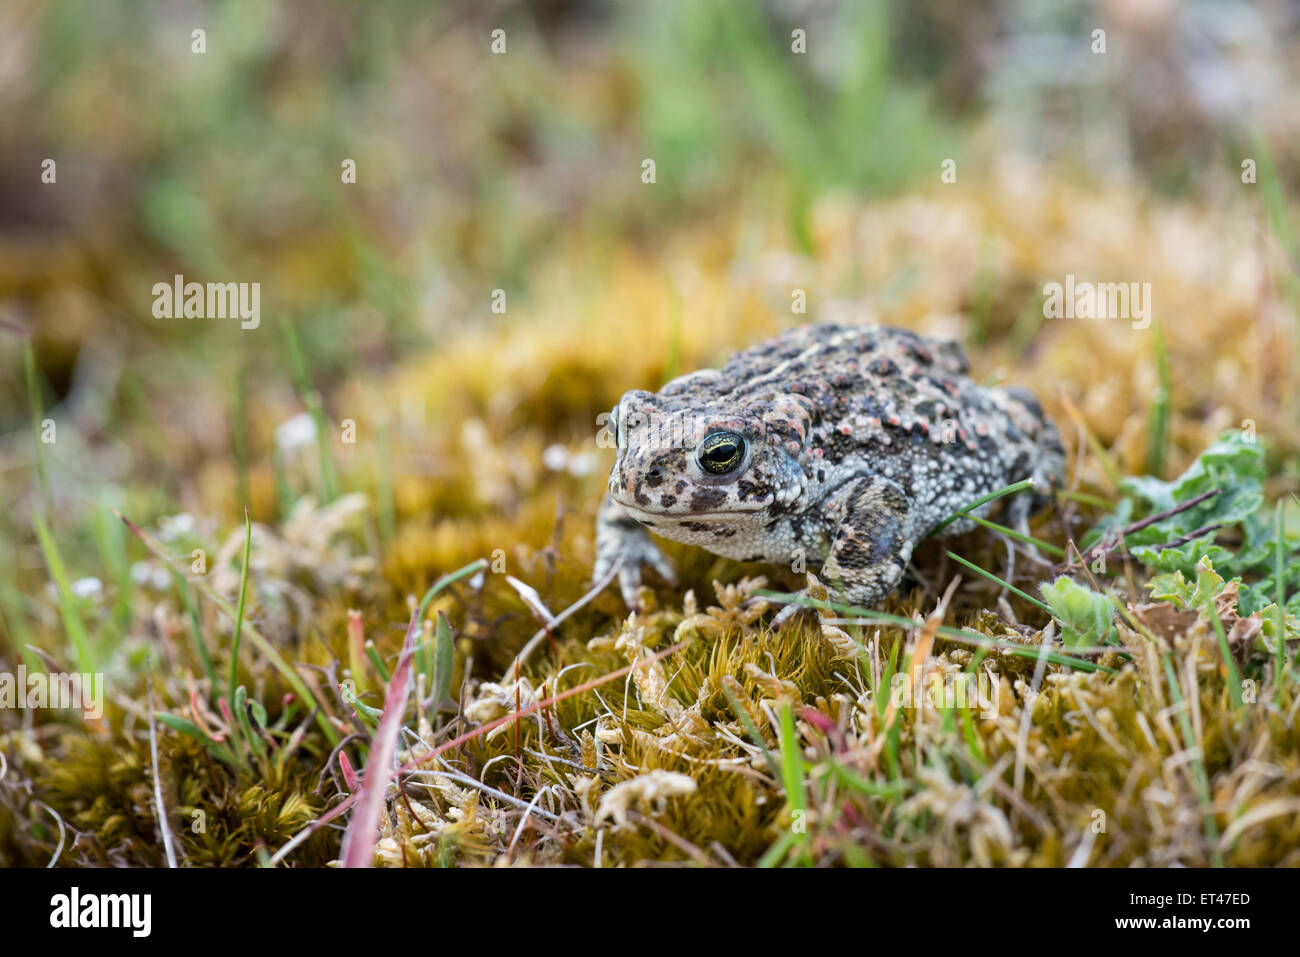 Yellow Stripe On Back Stock Photos Freddie The Frog Baby Shoes Gwen Stripes Natterjack Toad Epidalea Calamita Down Can Be Seen